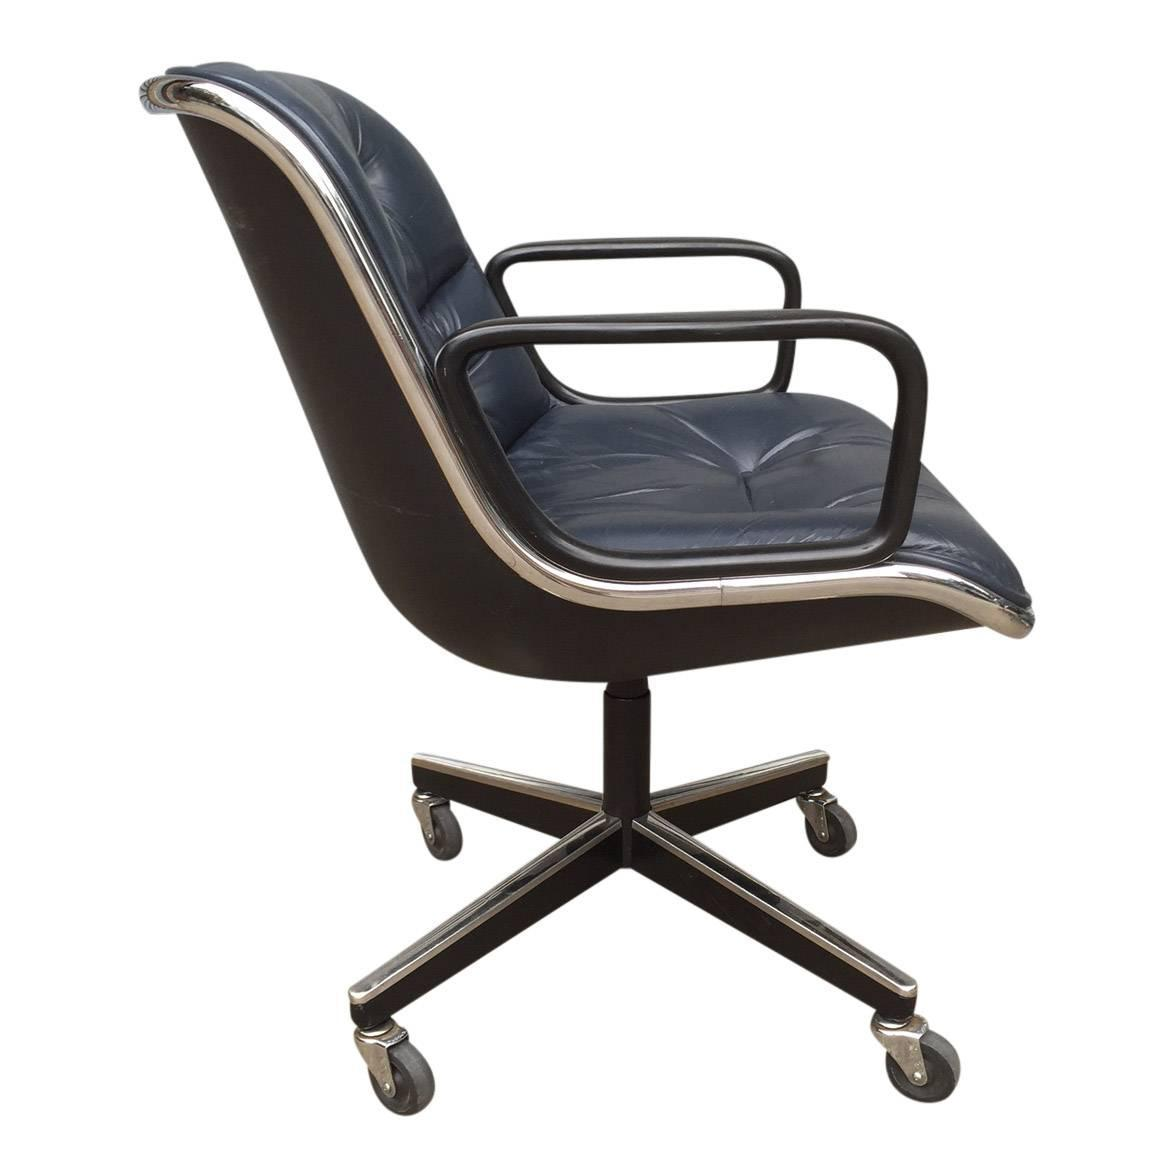 blue leather office chair ikea kivik covers charles pollock for knoll chairs in